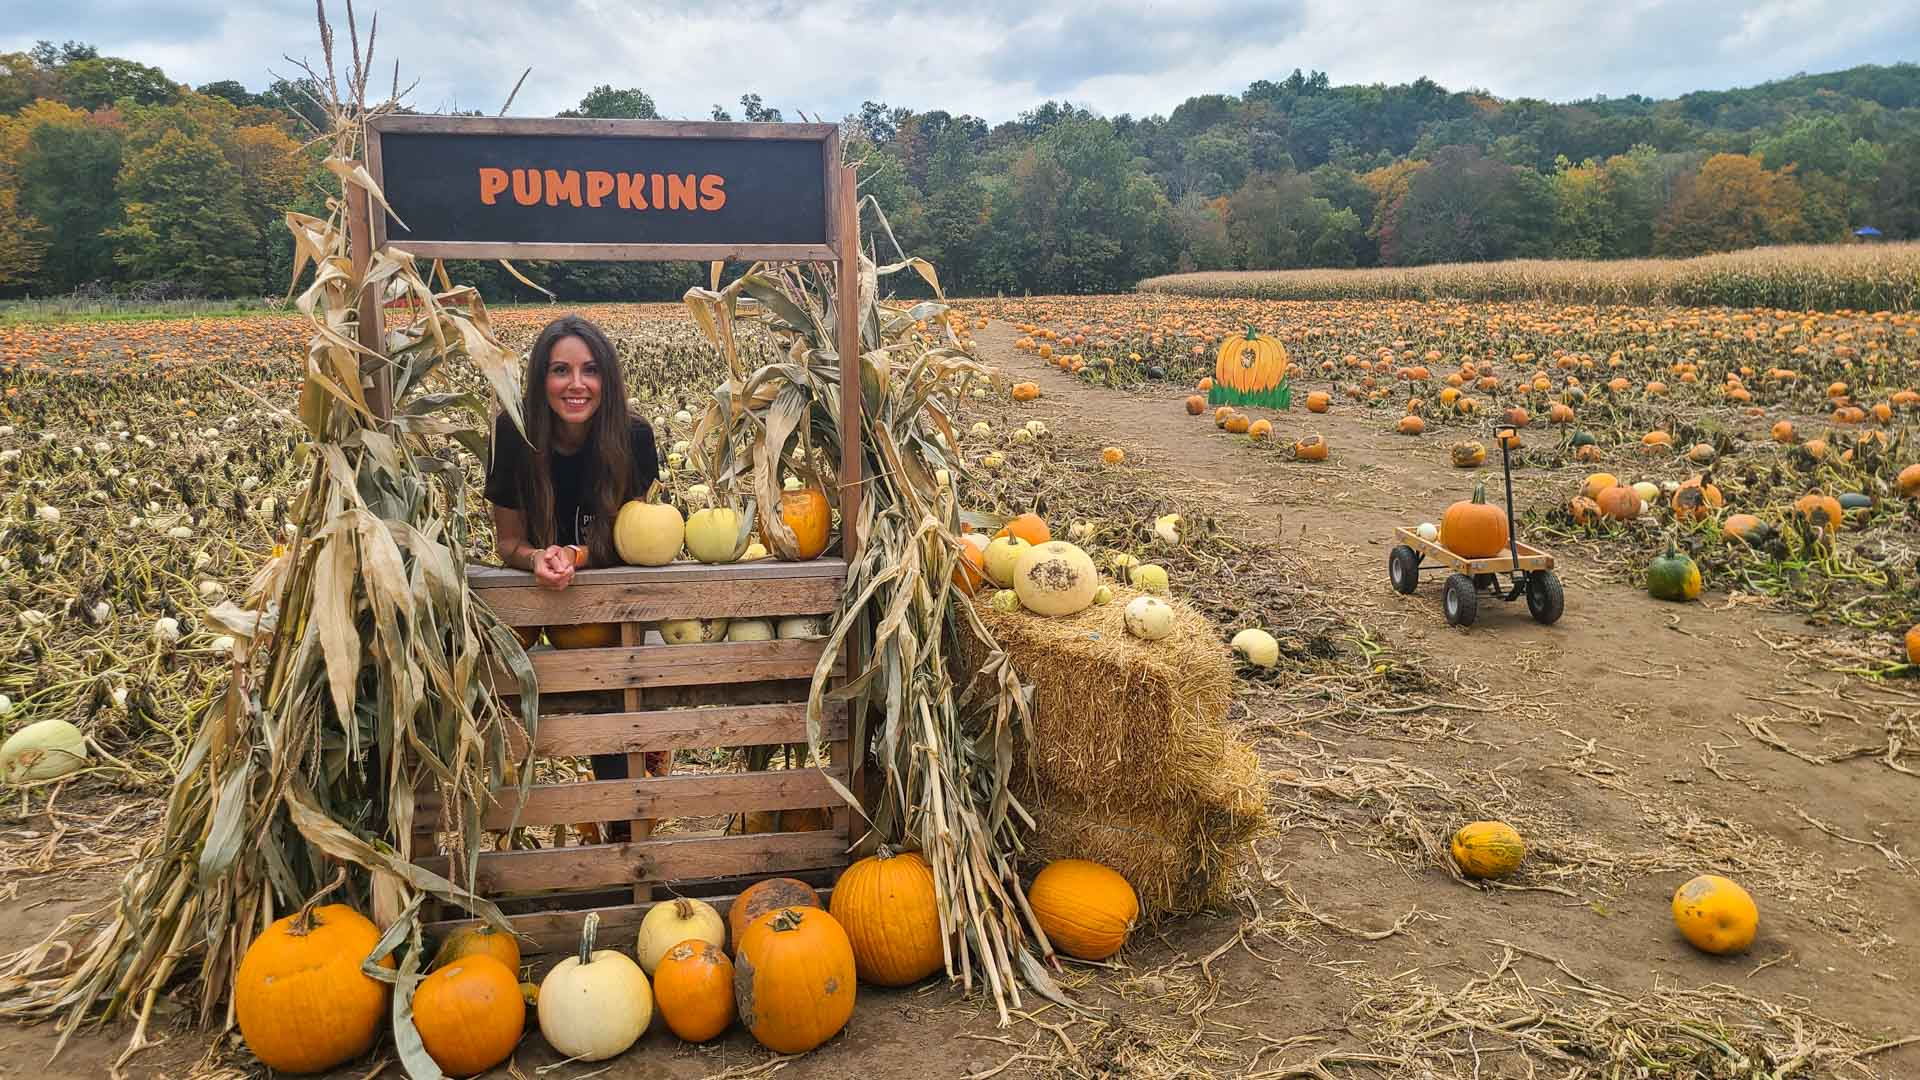 Huerto de calabazas en The Farm, Woodbury, Connecticut